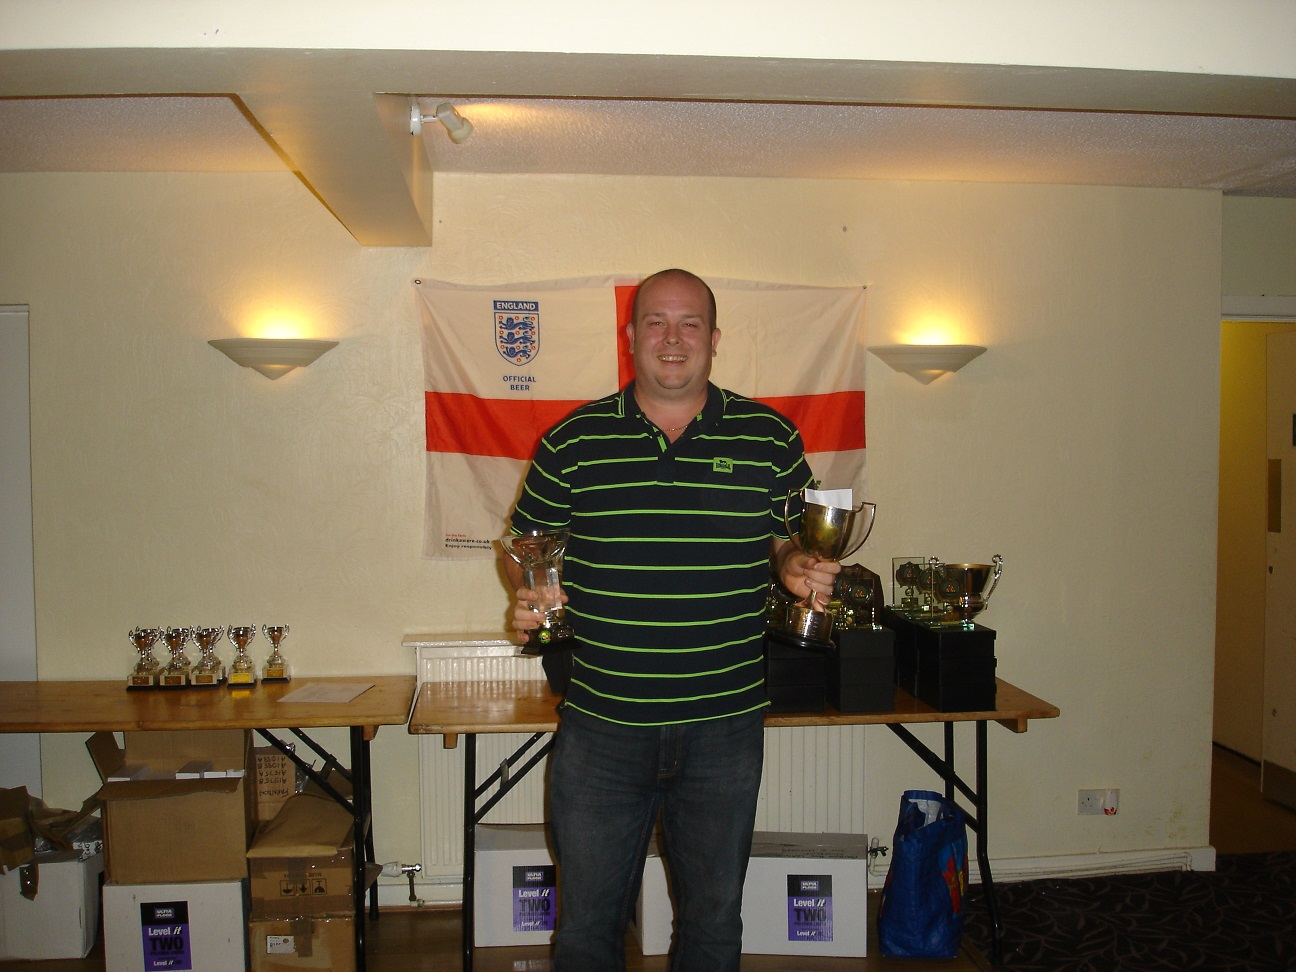 Singles Winner - Lee Venables